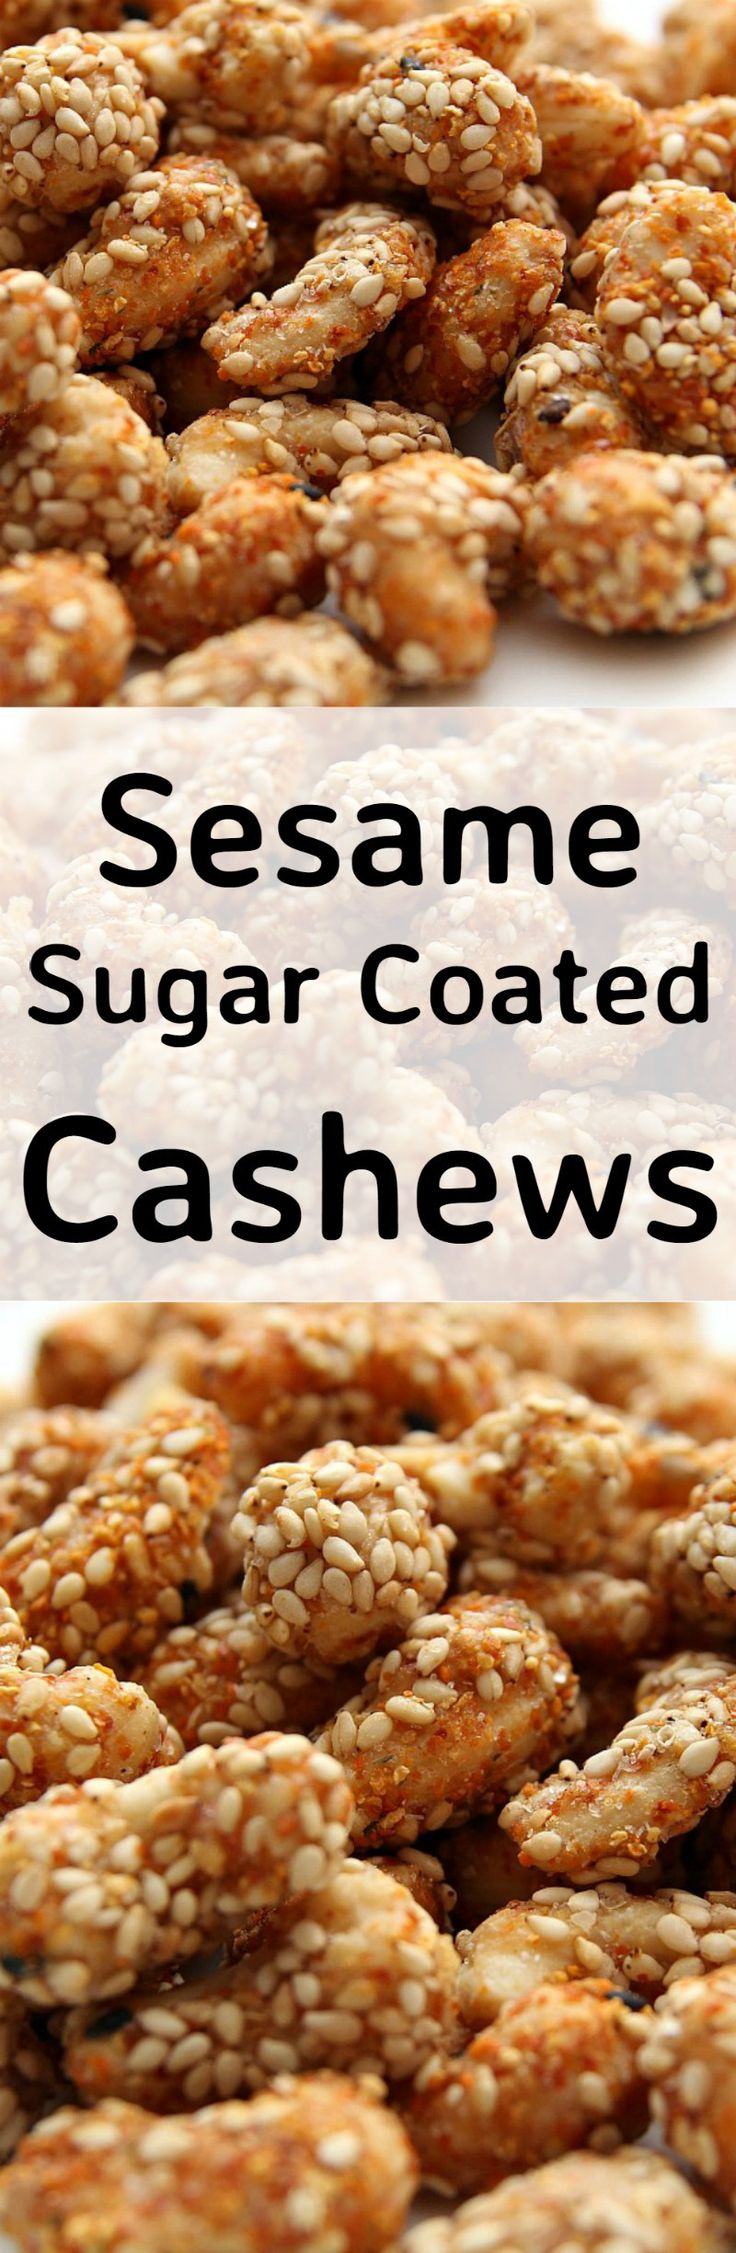 Sesame Sugar Coated Cashews. These are delicious served warm! The sugar coating along with the sesame and other spices makes for a lovely flavor. Recipe also has other flavor suggestions for you to try so make up a batch soon! | Lovefoodies.com